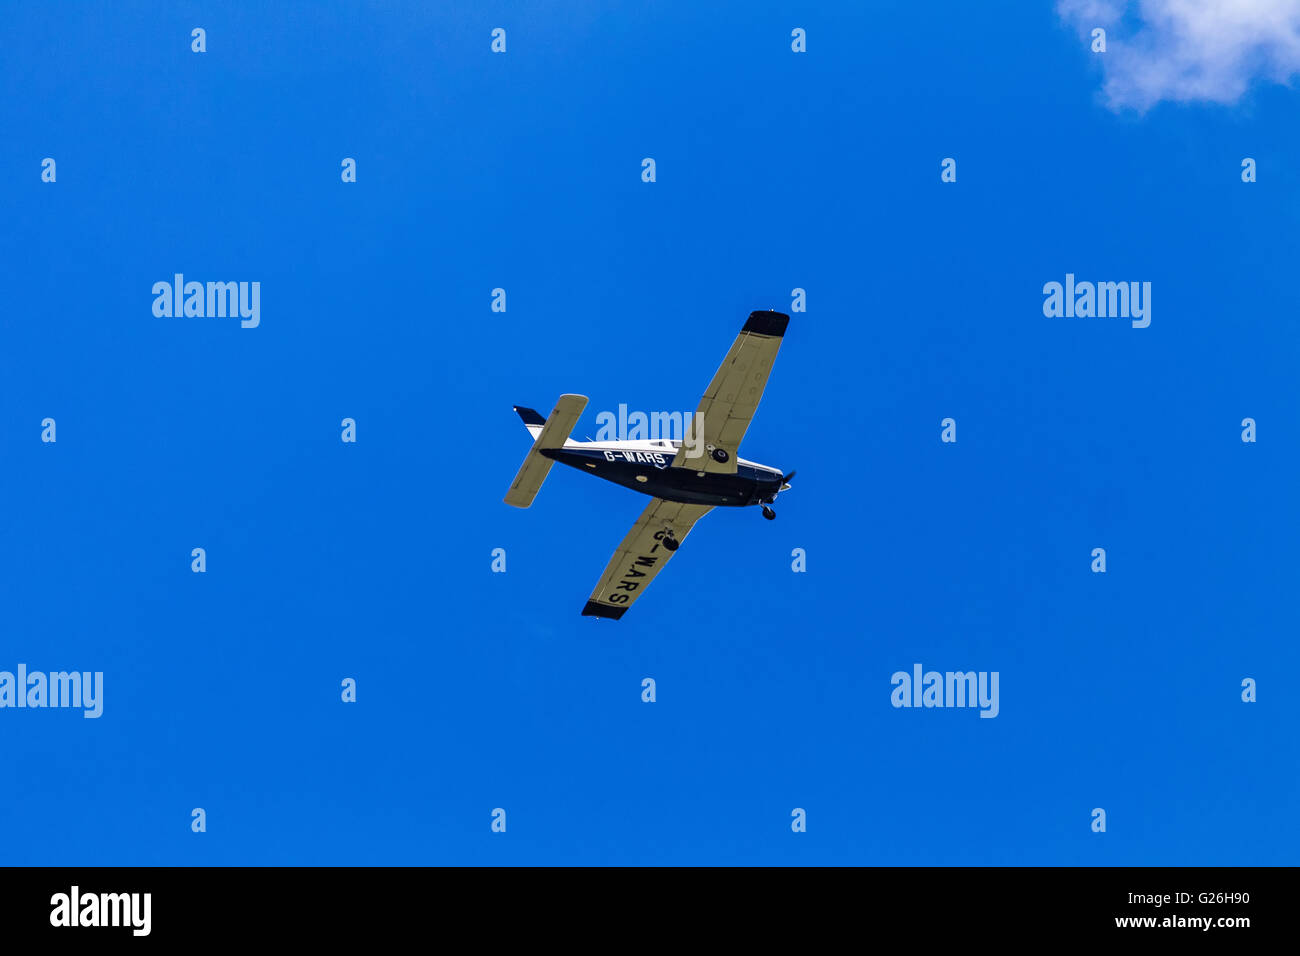 Piper PA-28 G-WARS flying, in an almost cloudless blue sky, over Elstree Airfield, Hertfordshire, UK, prior to landing. - Stock Image